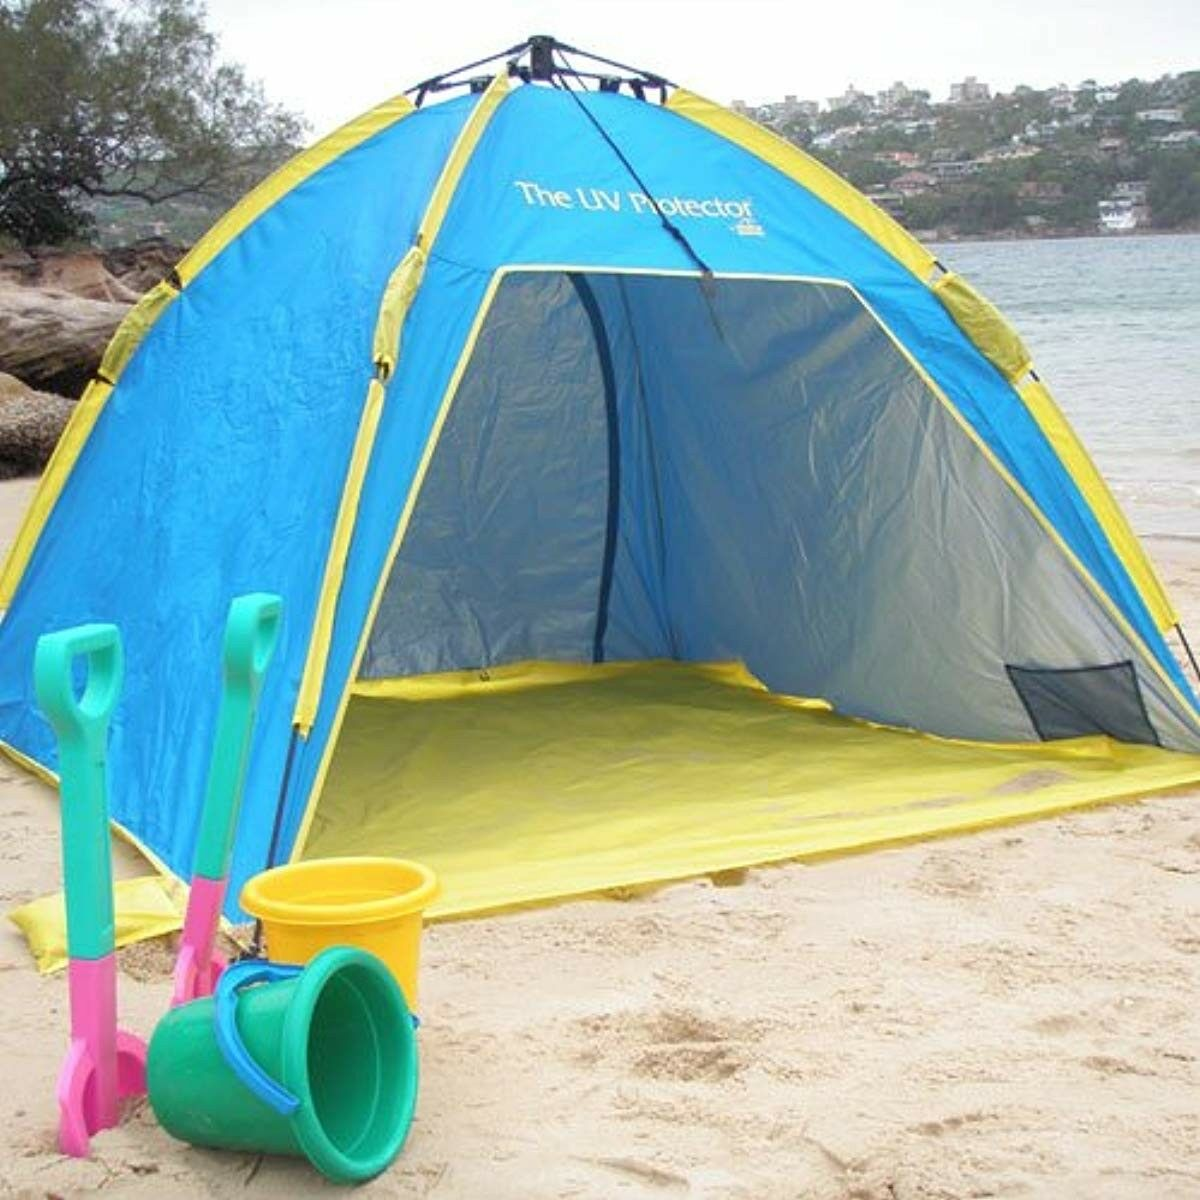 Outdoor Sun Shelter bluee UV Predector Beach Tent Camping Hiking Sport Accessory